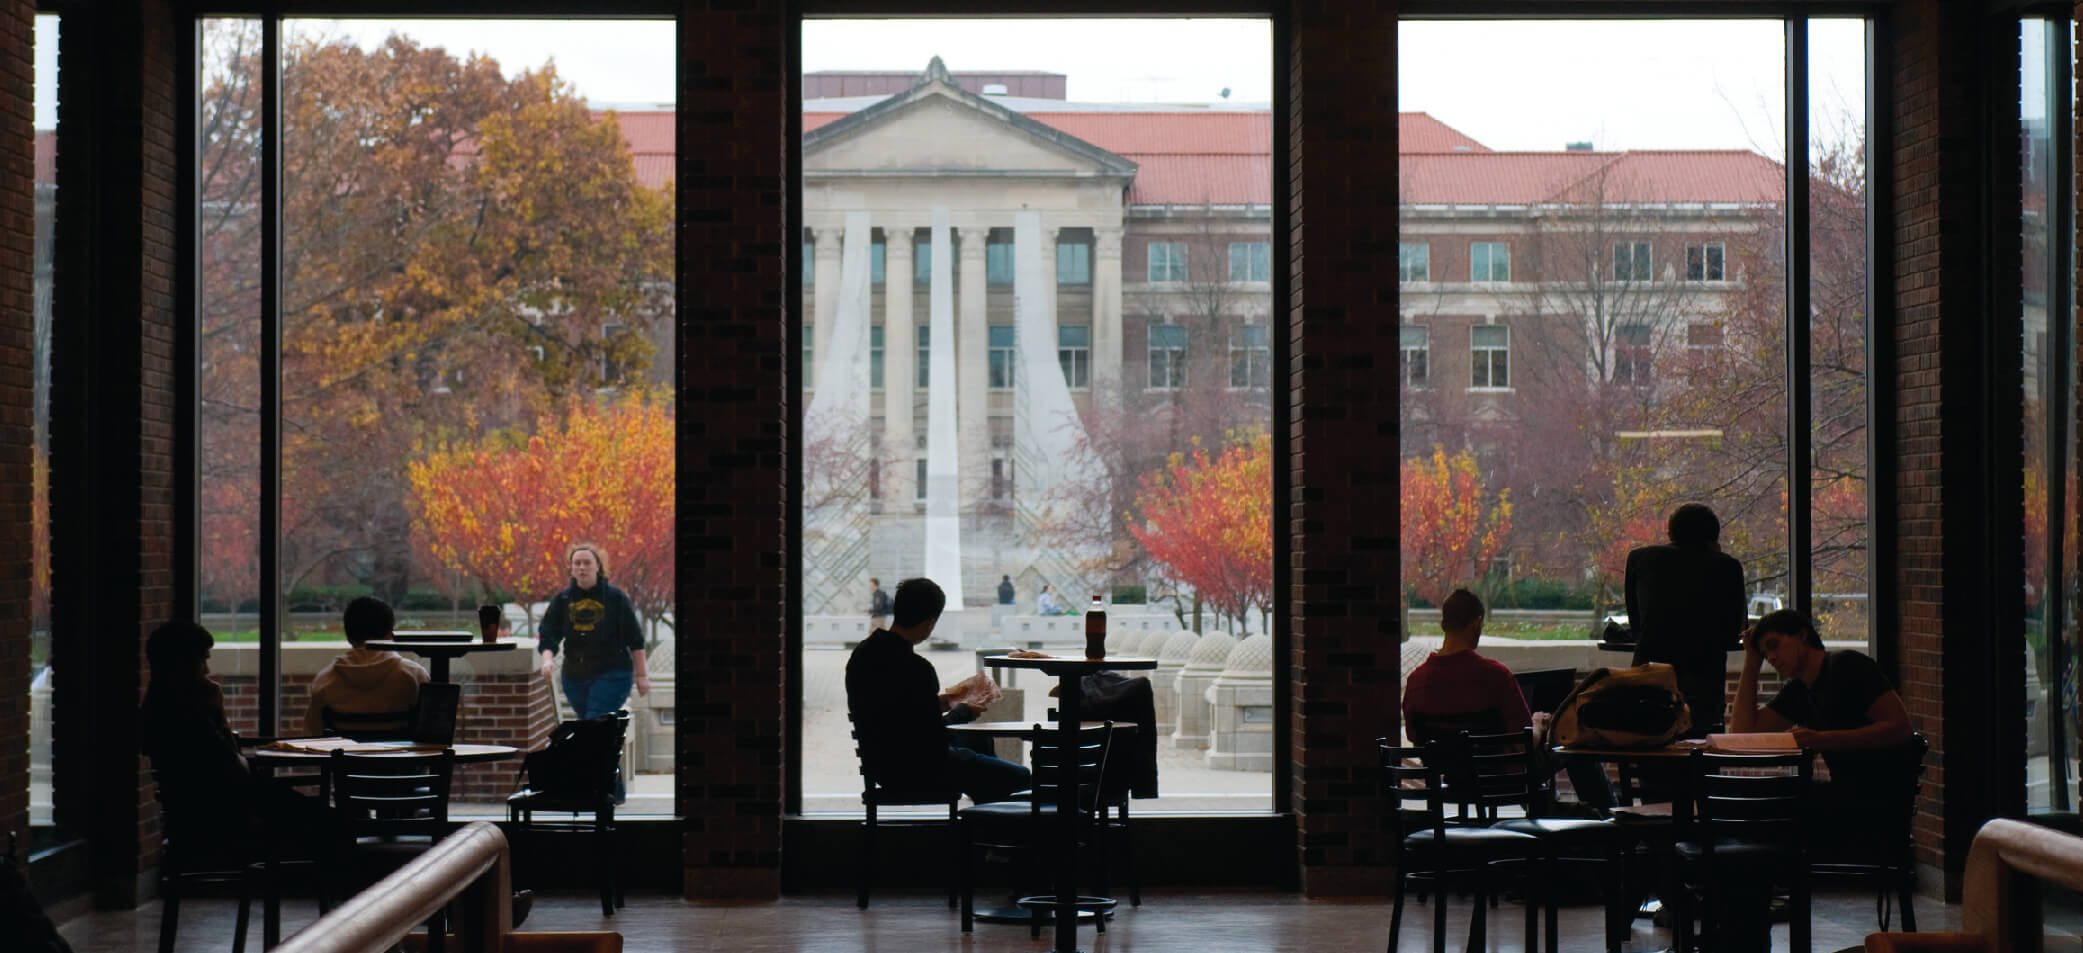 Students study with a window showing Purdue's campus behind them